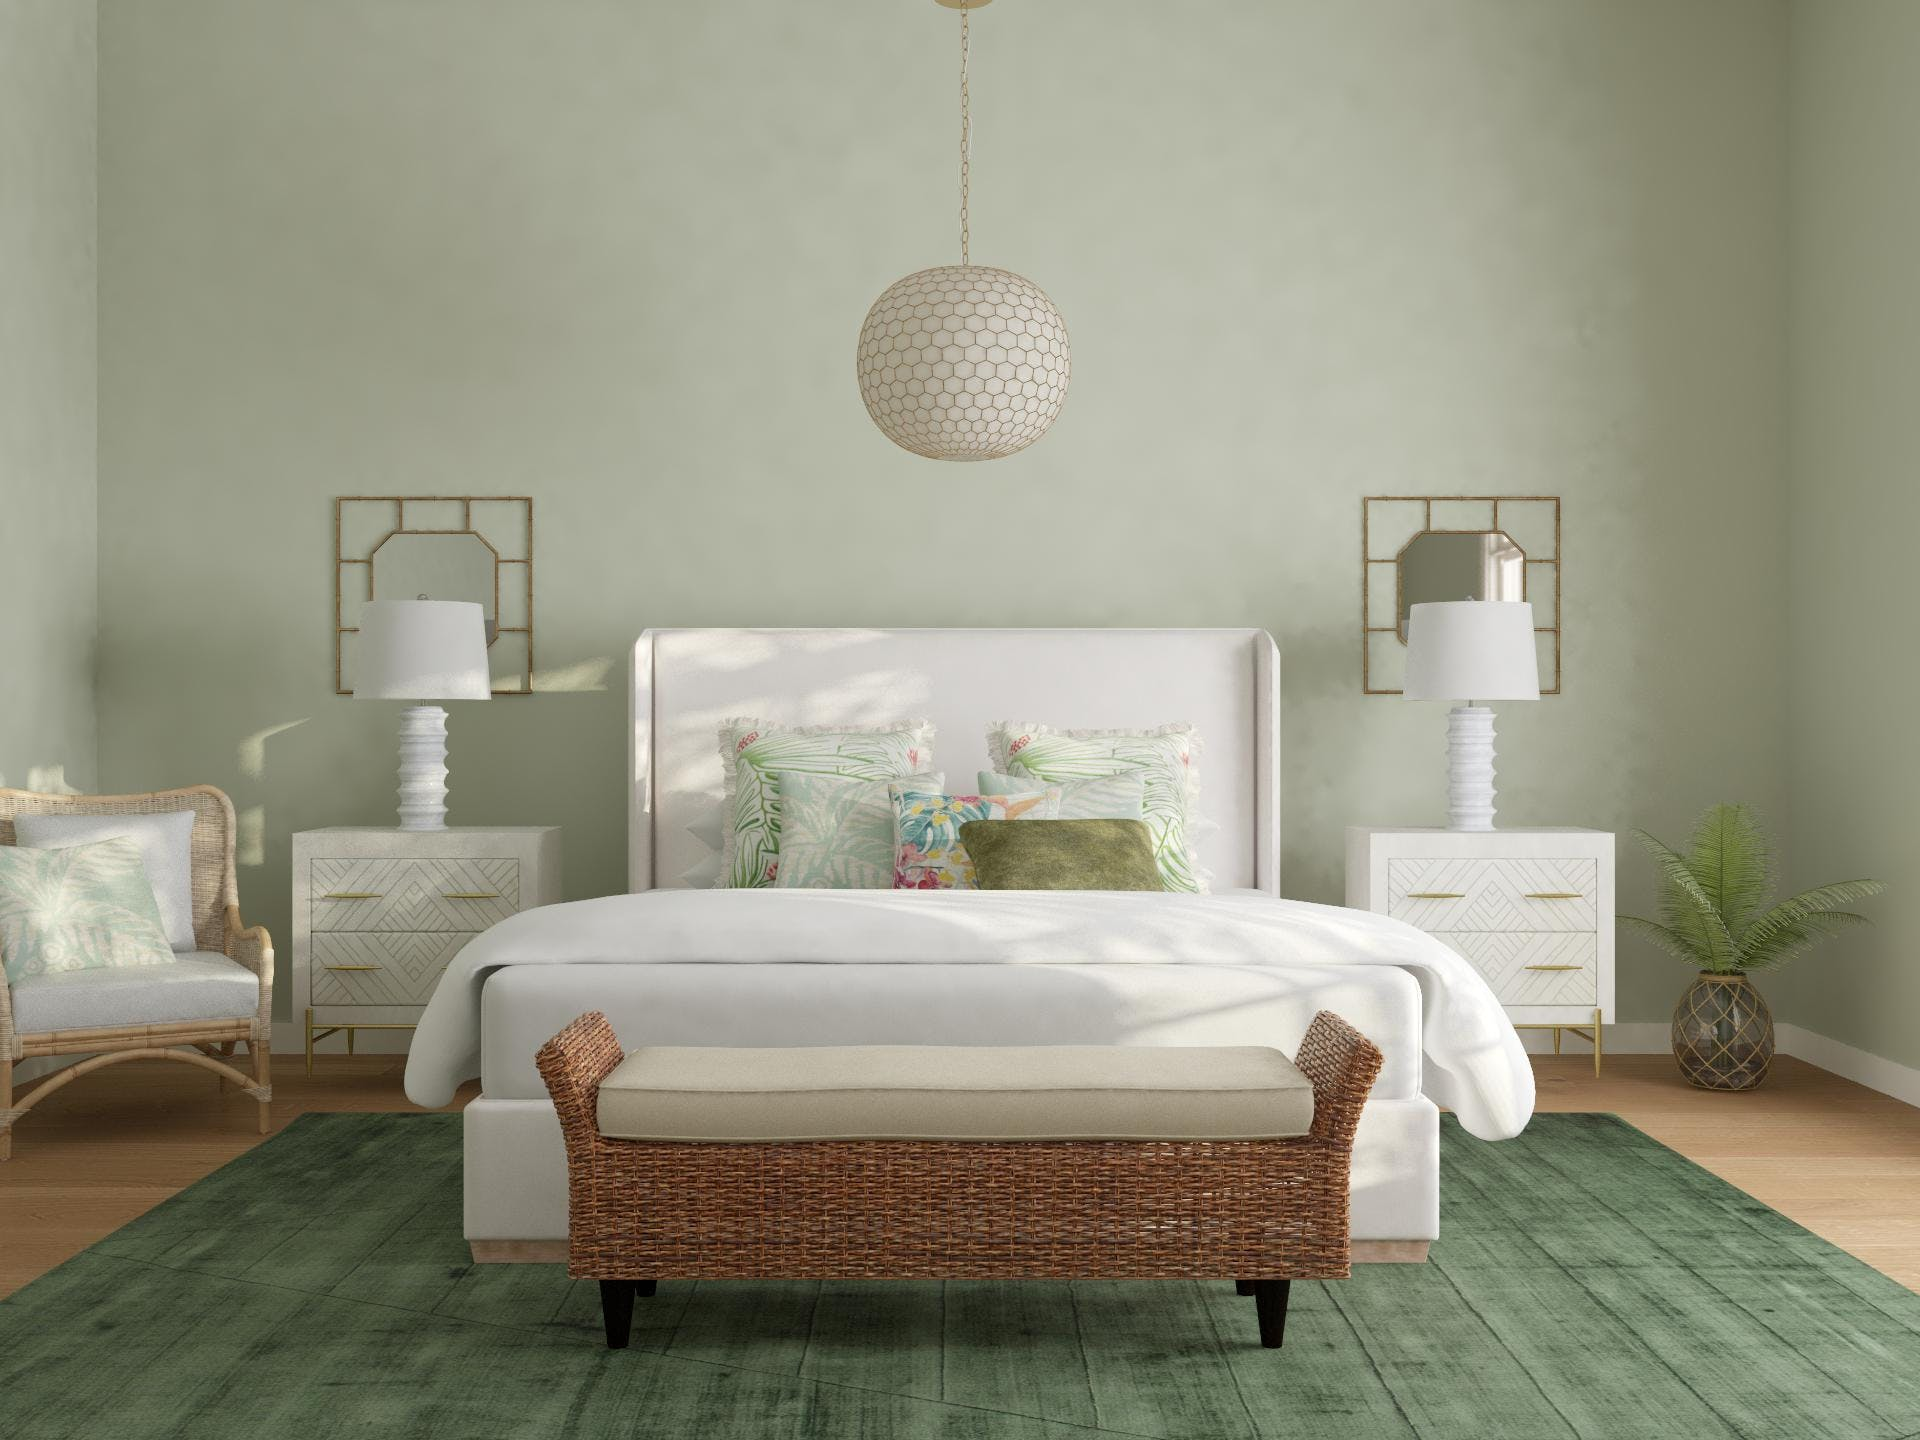 Pale Green Bedroom in Transitional Style